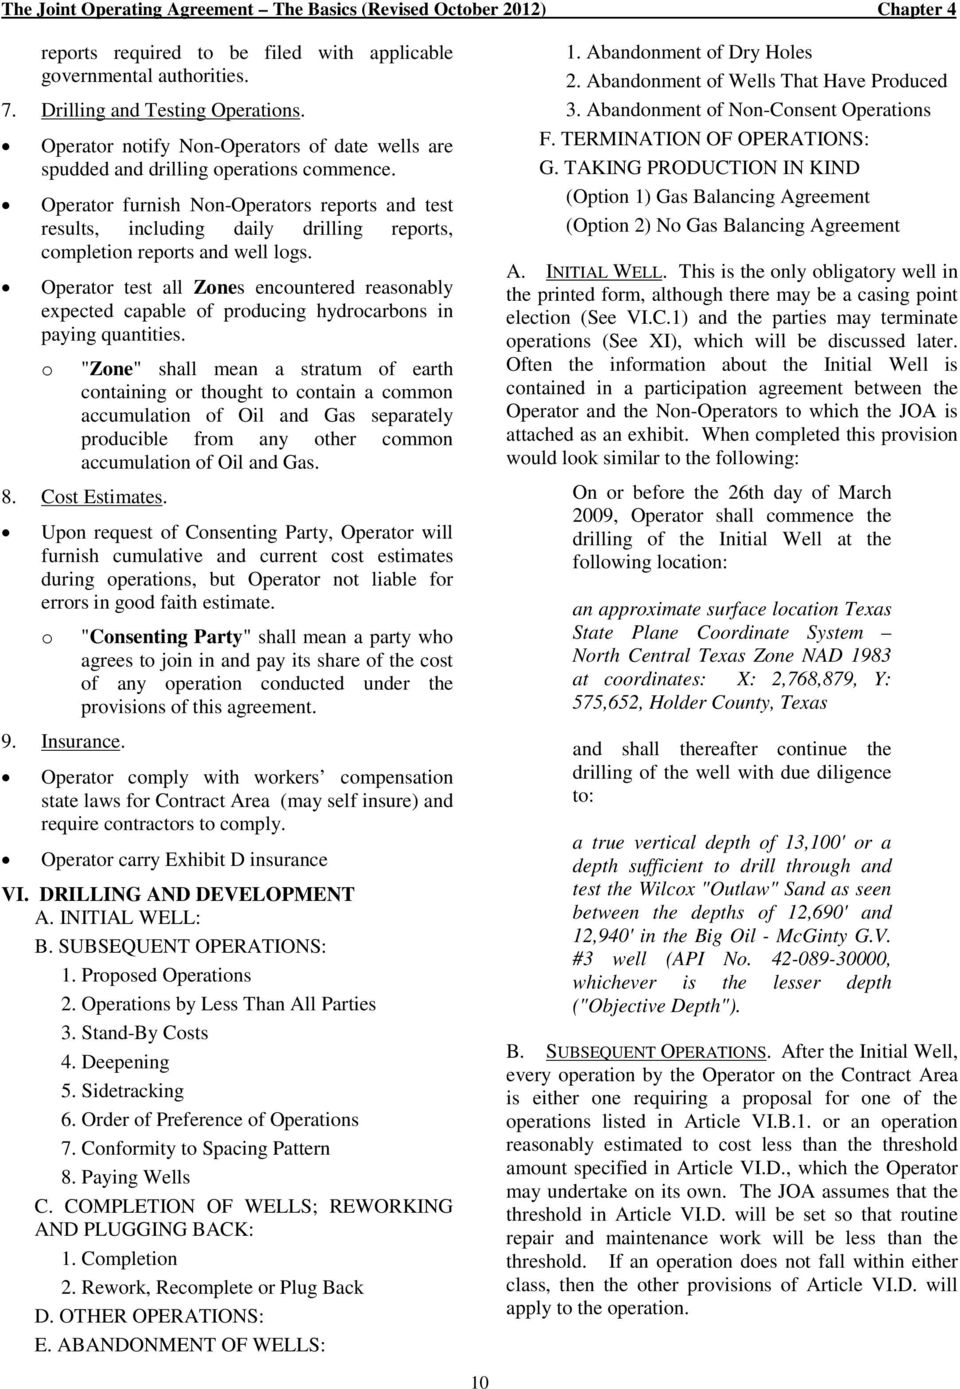 The Joint Operating Agreement The Basics Revised October 2012 Pdf